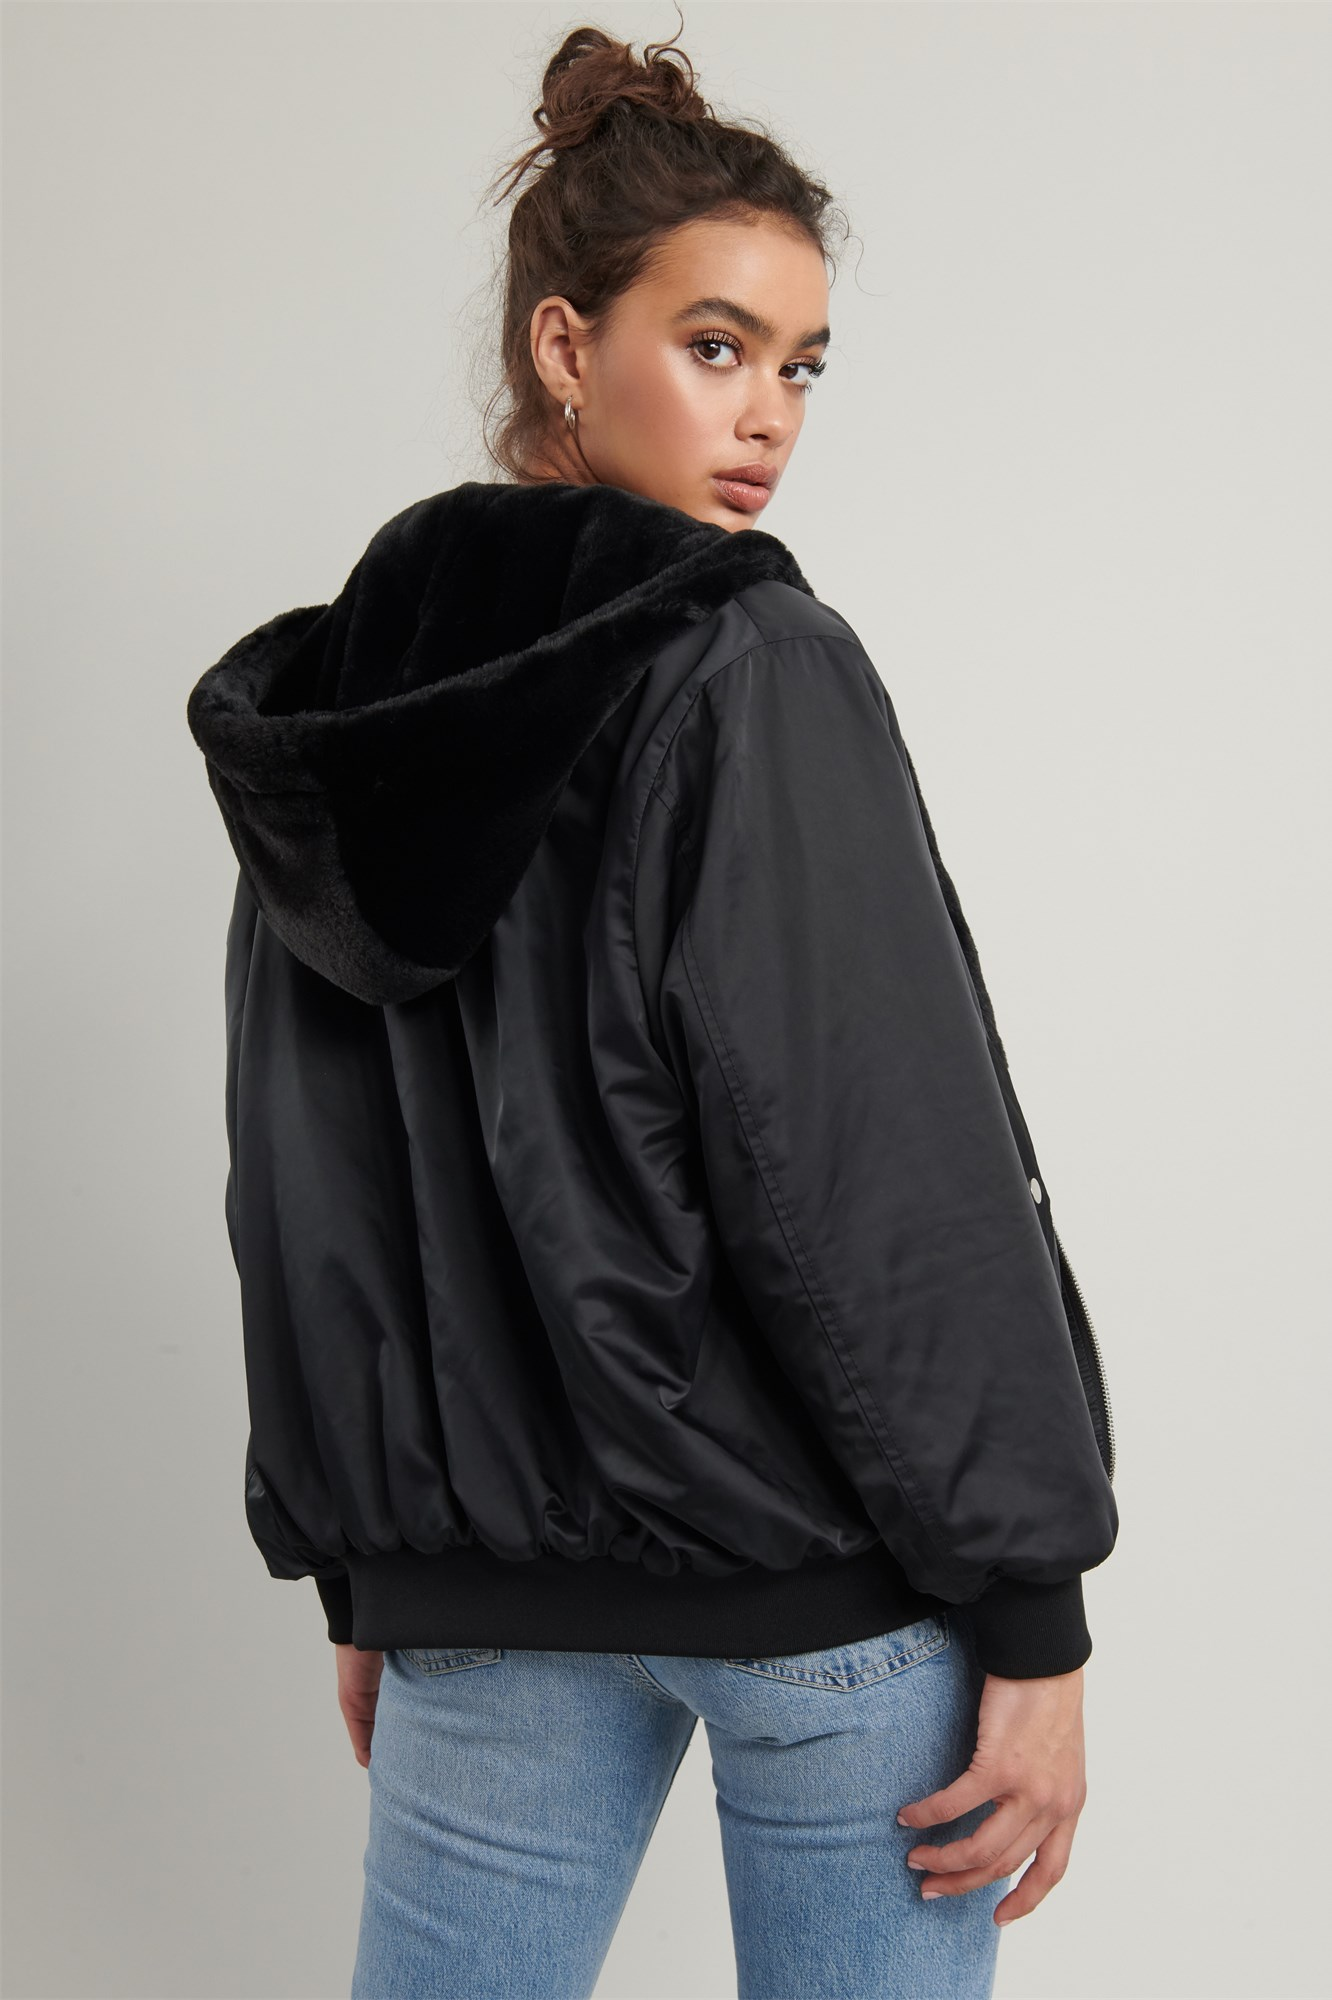 Image 8 of The Two-Faced Reversible Bomber